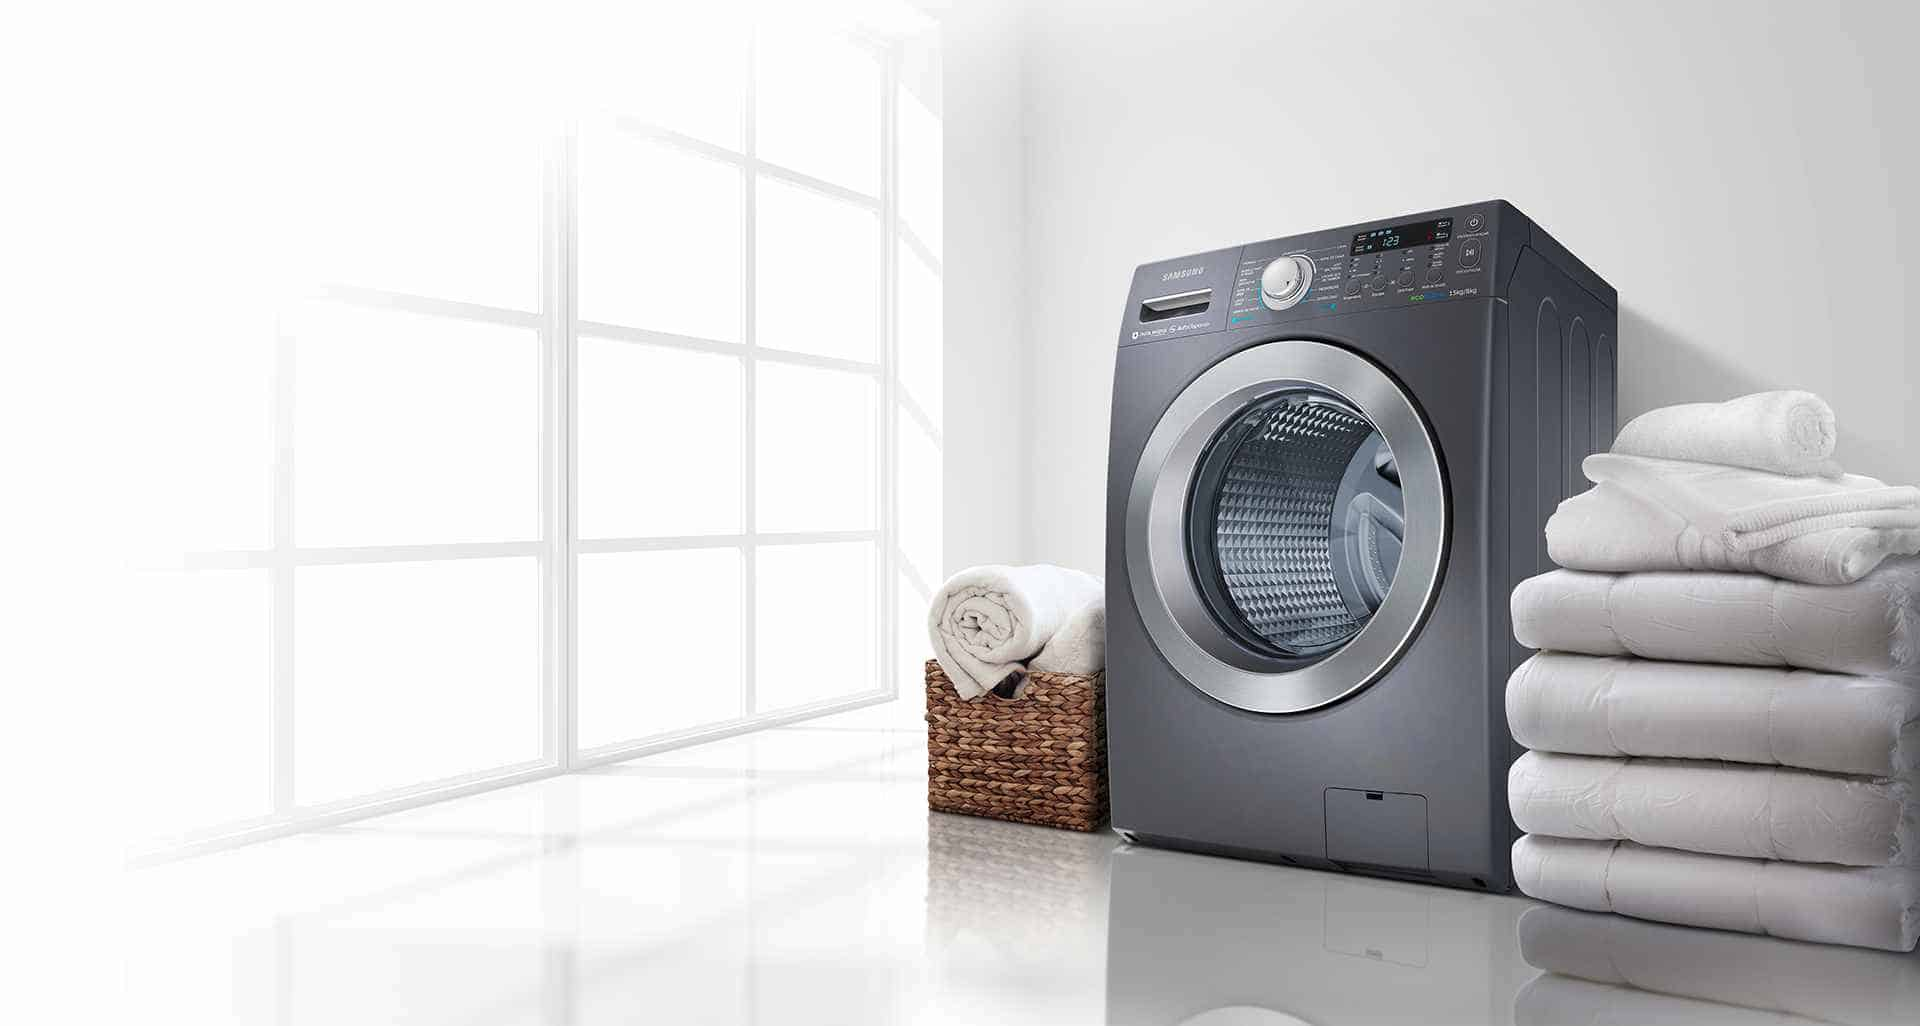 Top658 Whirlpool Washing Machine Repair Service Center in Mumbai